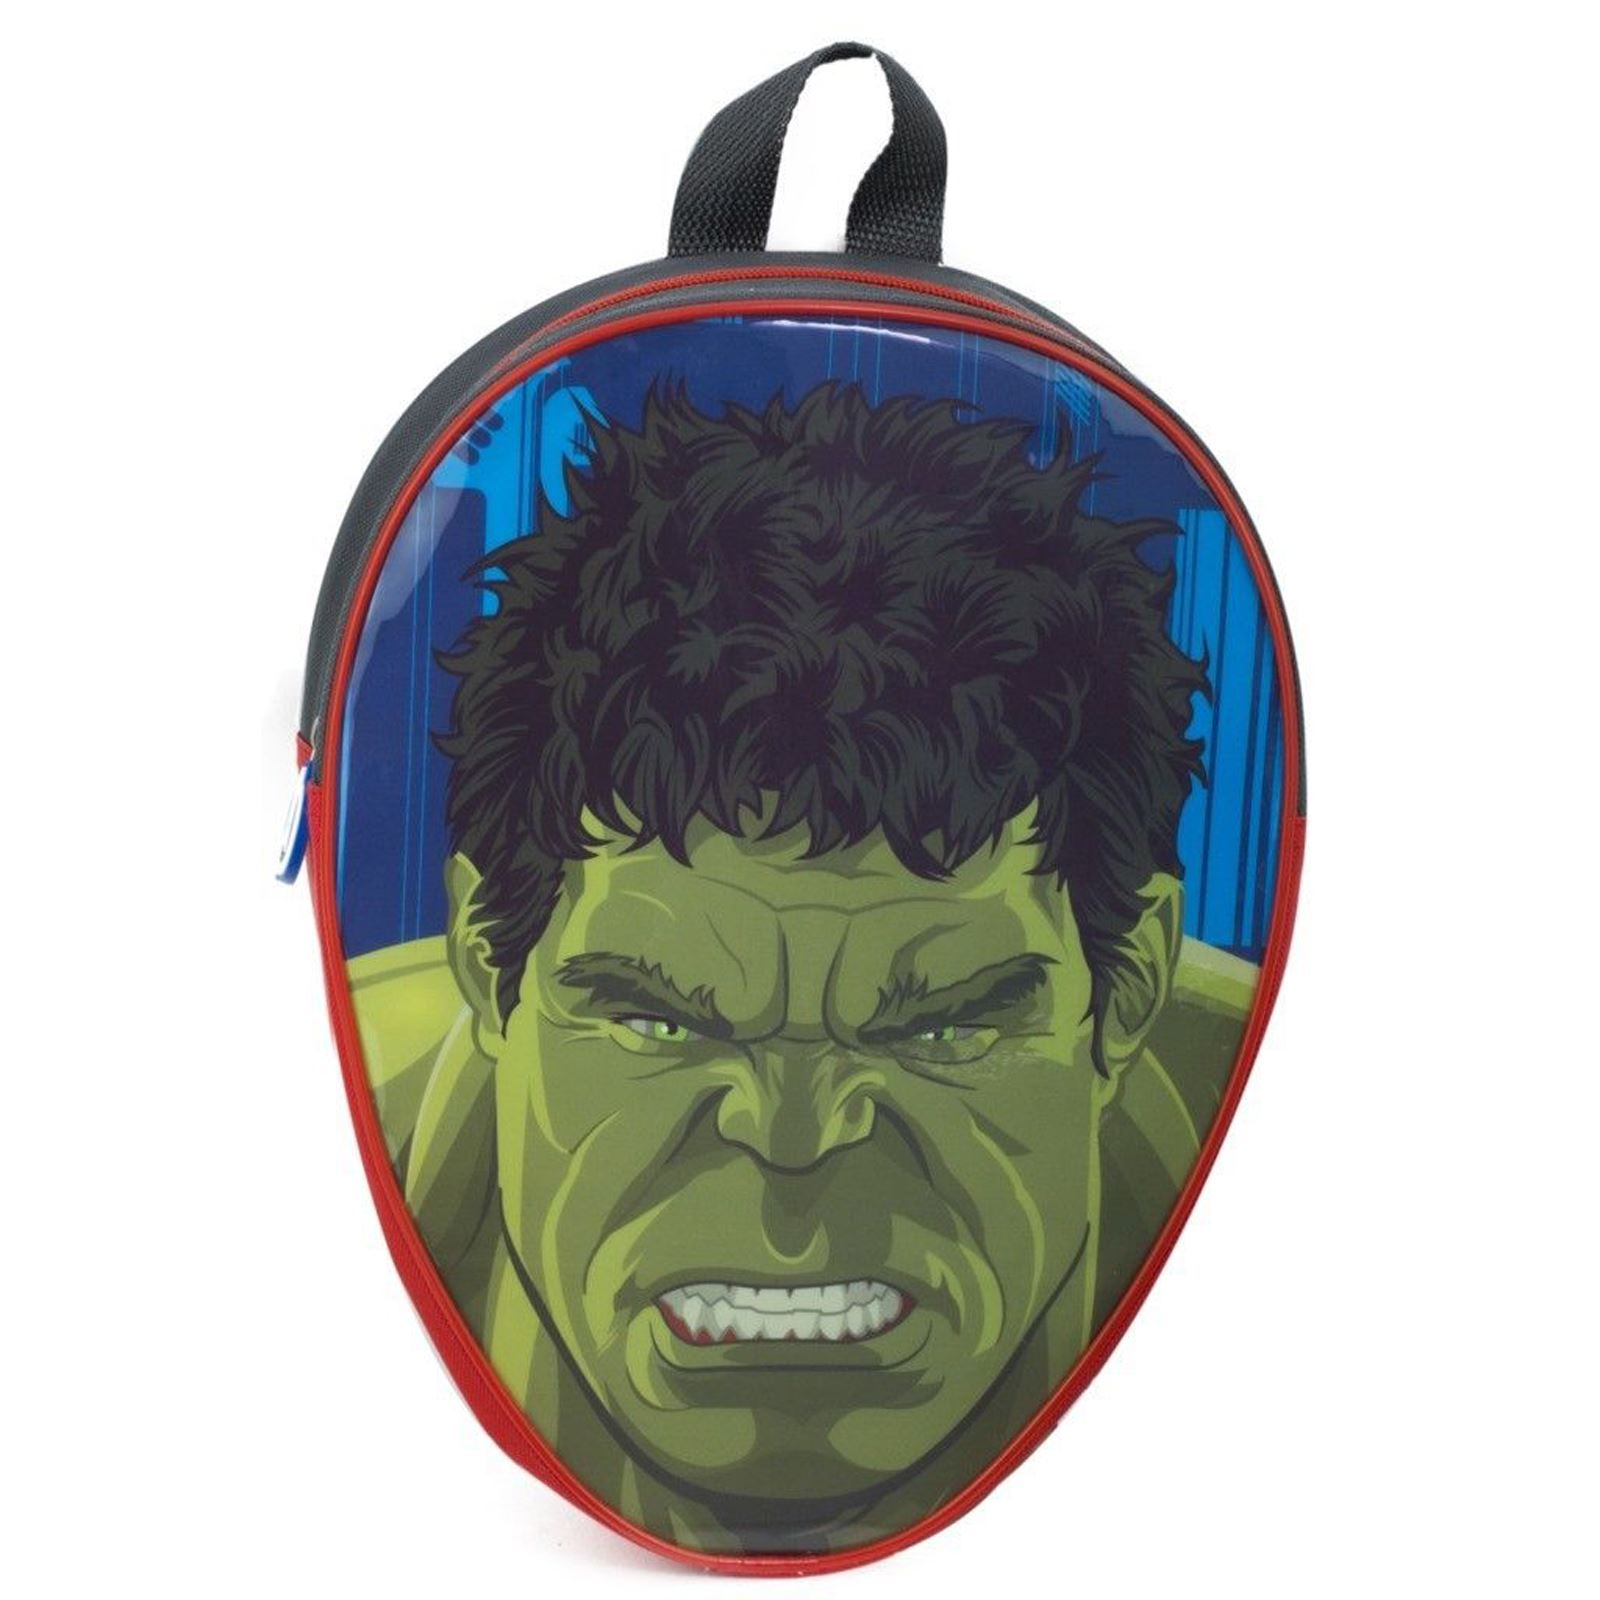 Dulux Marvel Avengers Bedroom In A Box Officially Awesome: MARVEL CHARACTER AVENGERS BACKPACK SCHOOL KIDS RUCKSACK BOYS